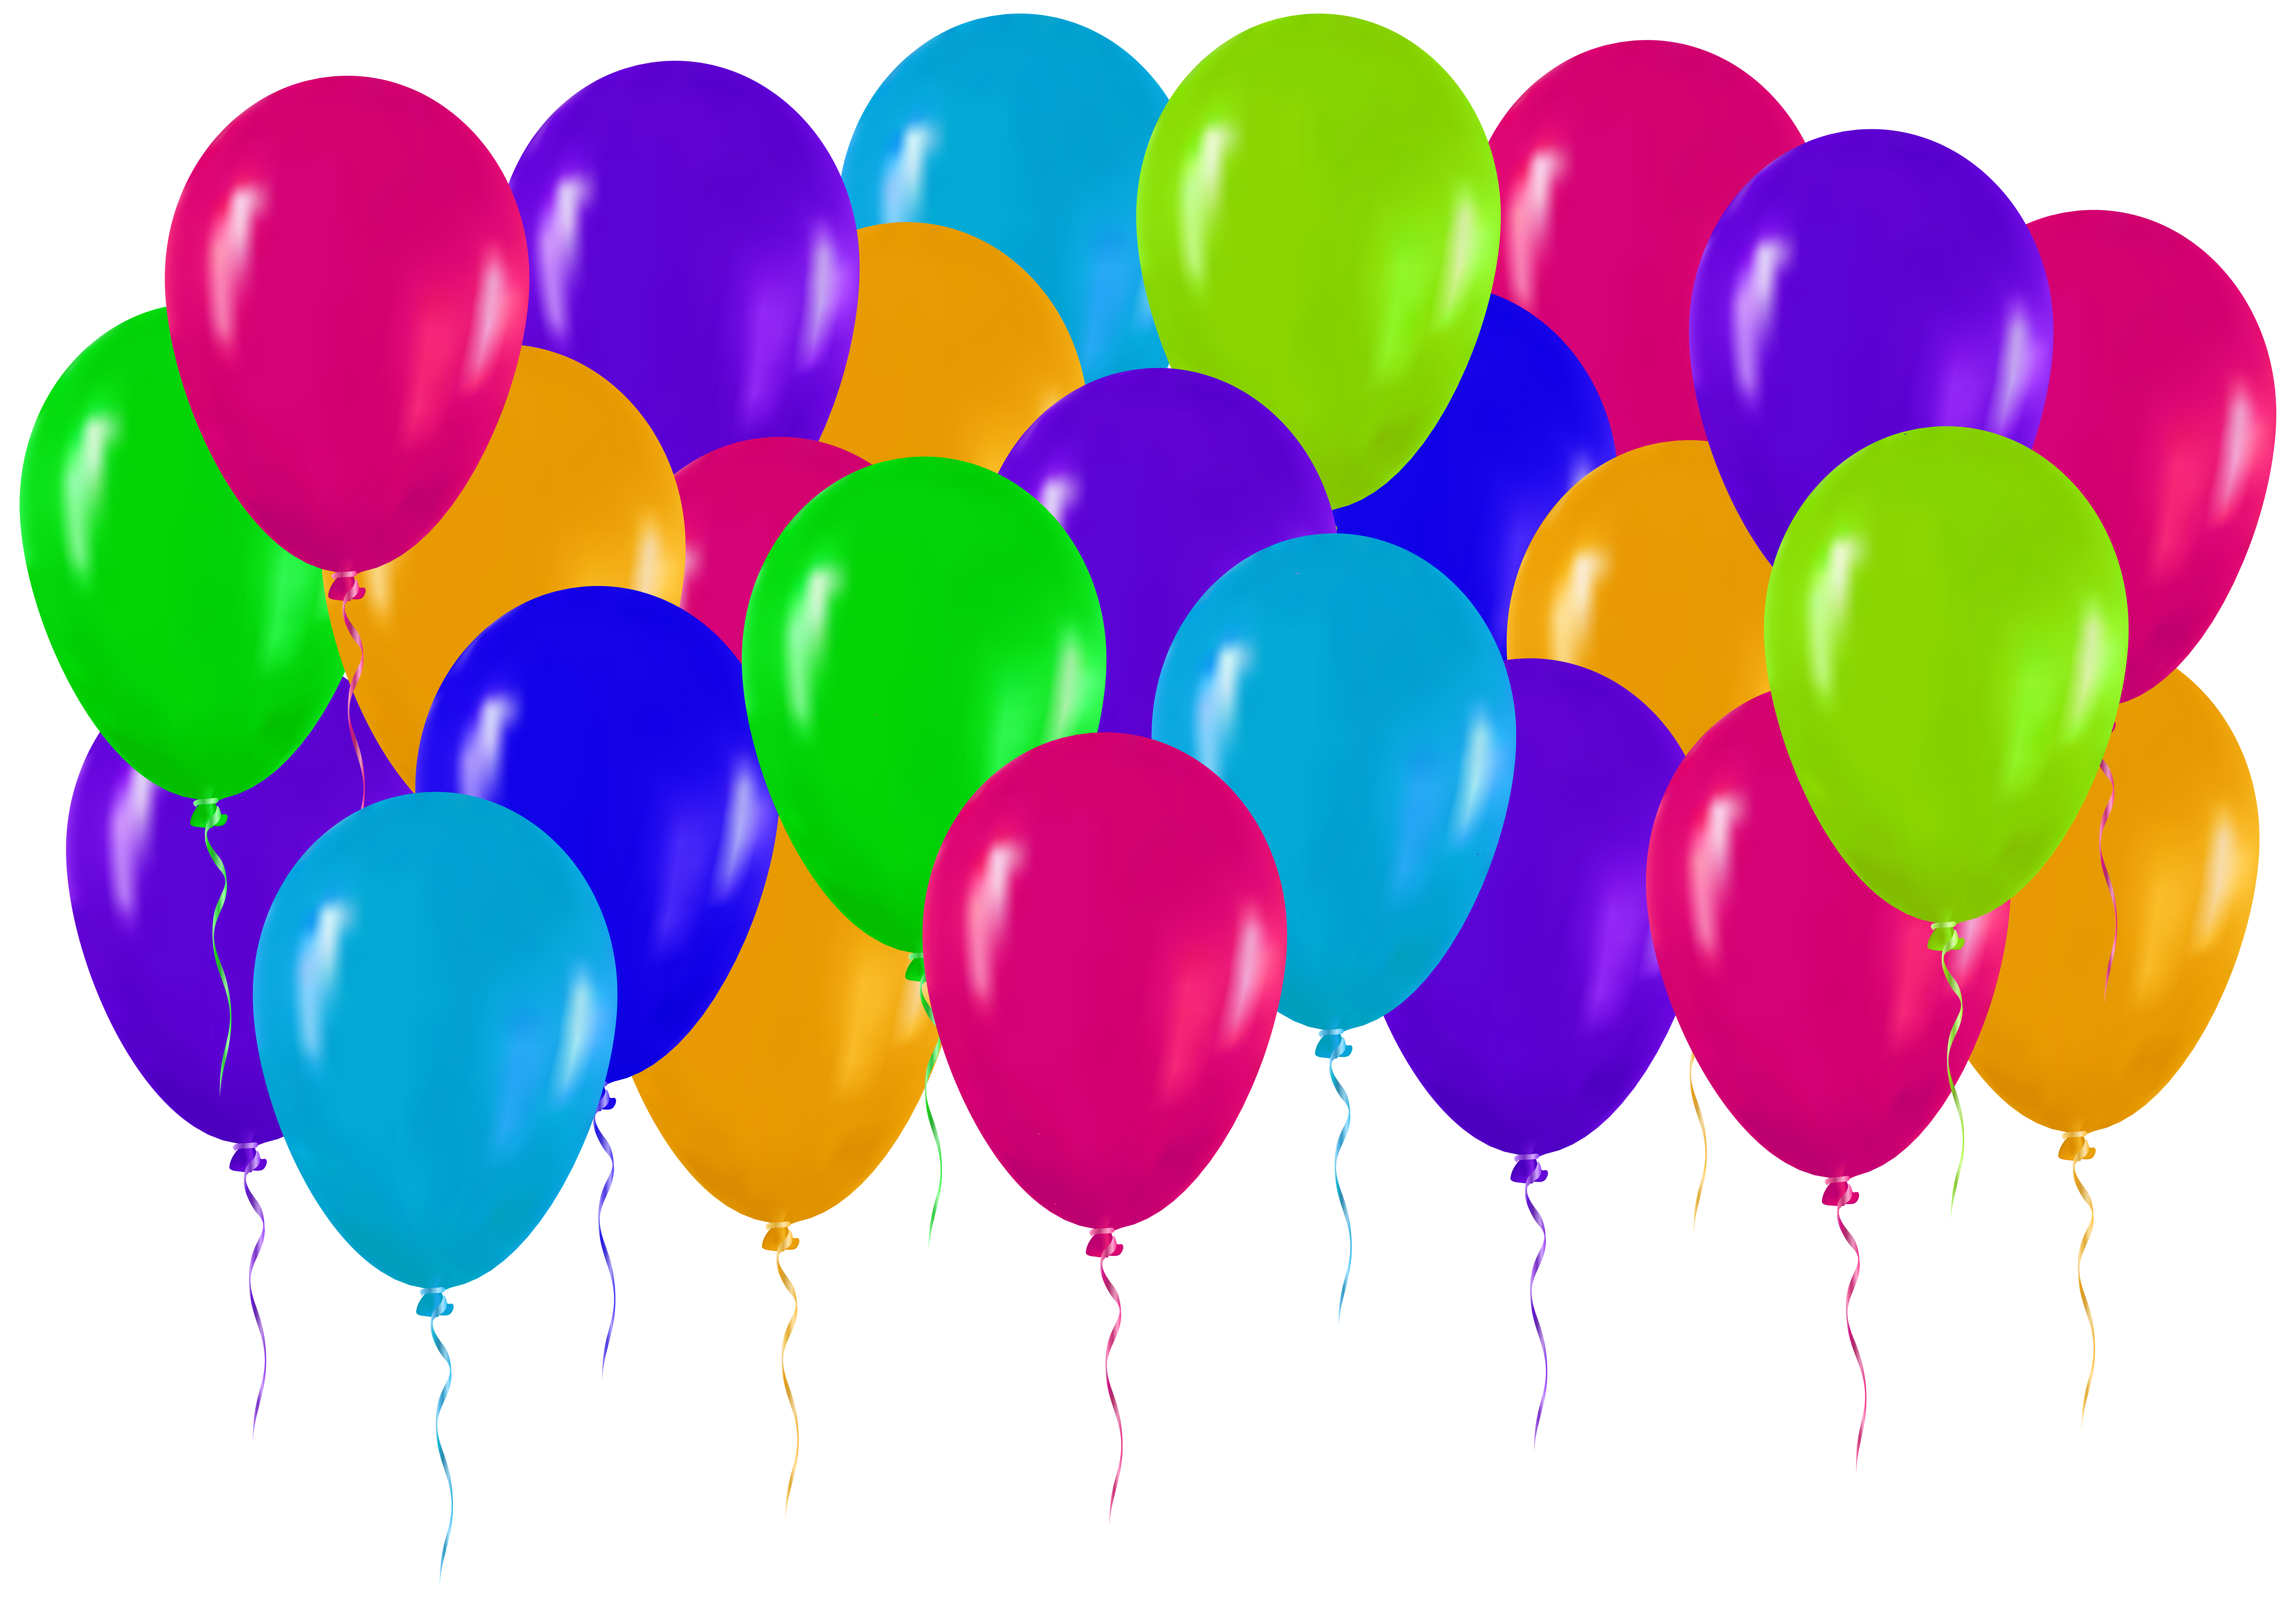 Clipart balloon gate. Colorful balloons png clip